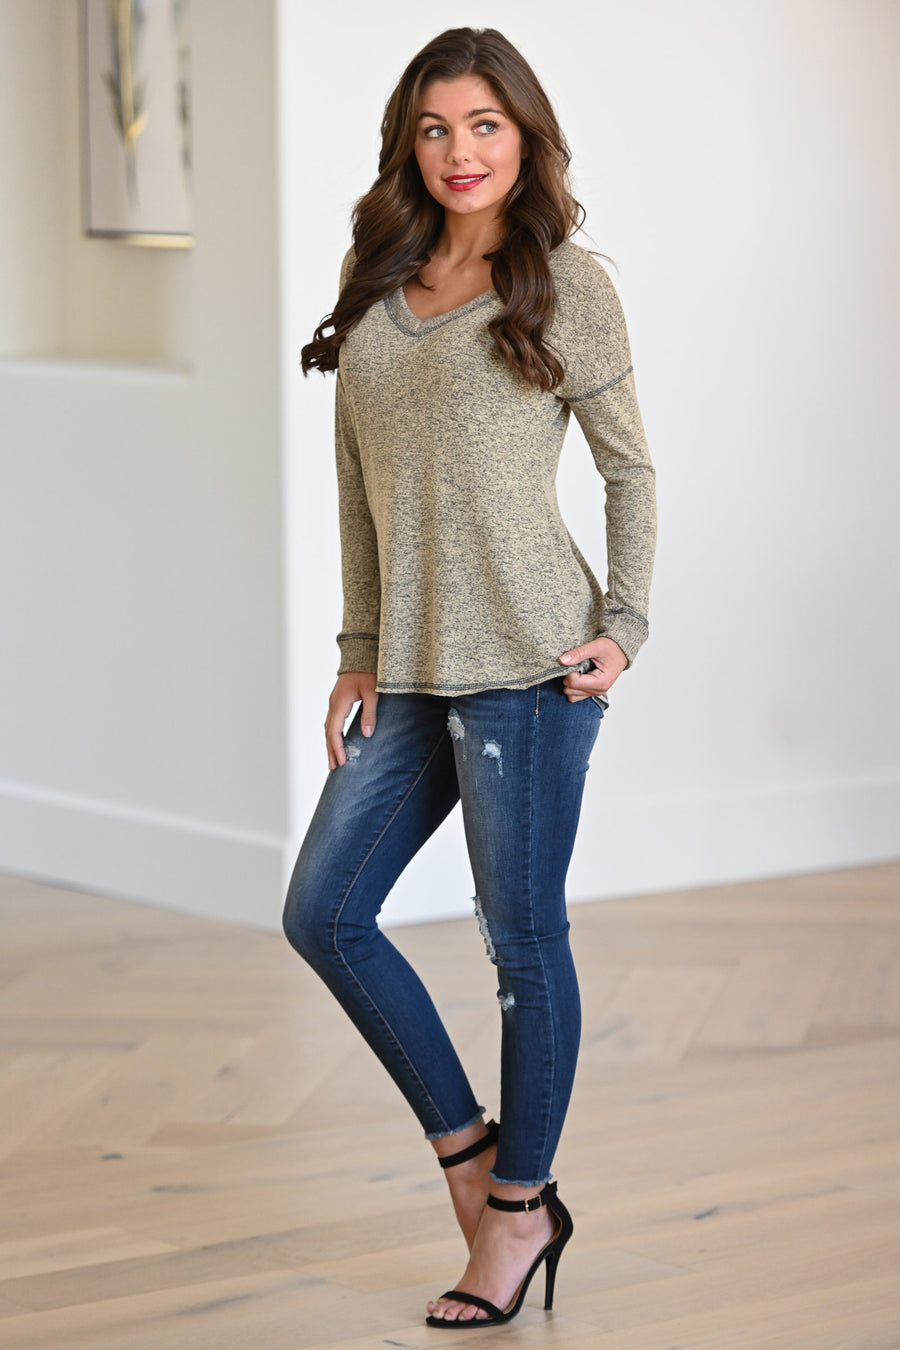 Doing What I Want Top - Taupe women's long sleeve knit top, Closet Candy Boutique 1